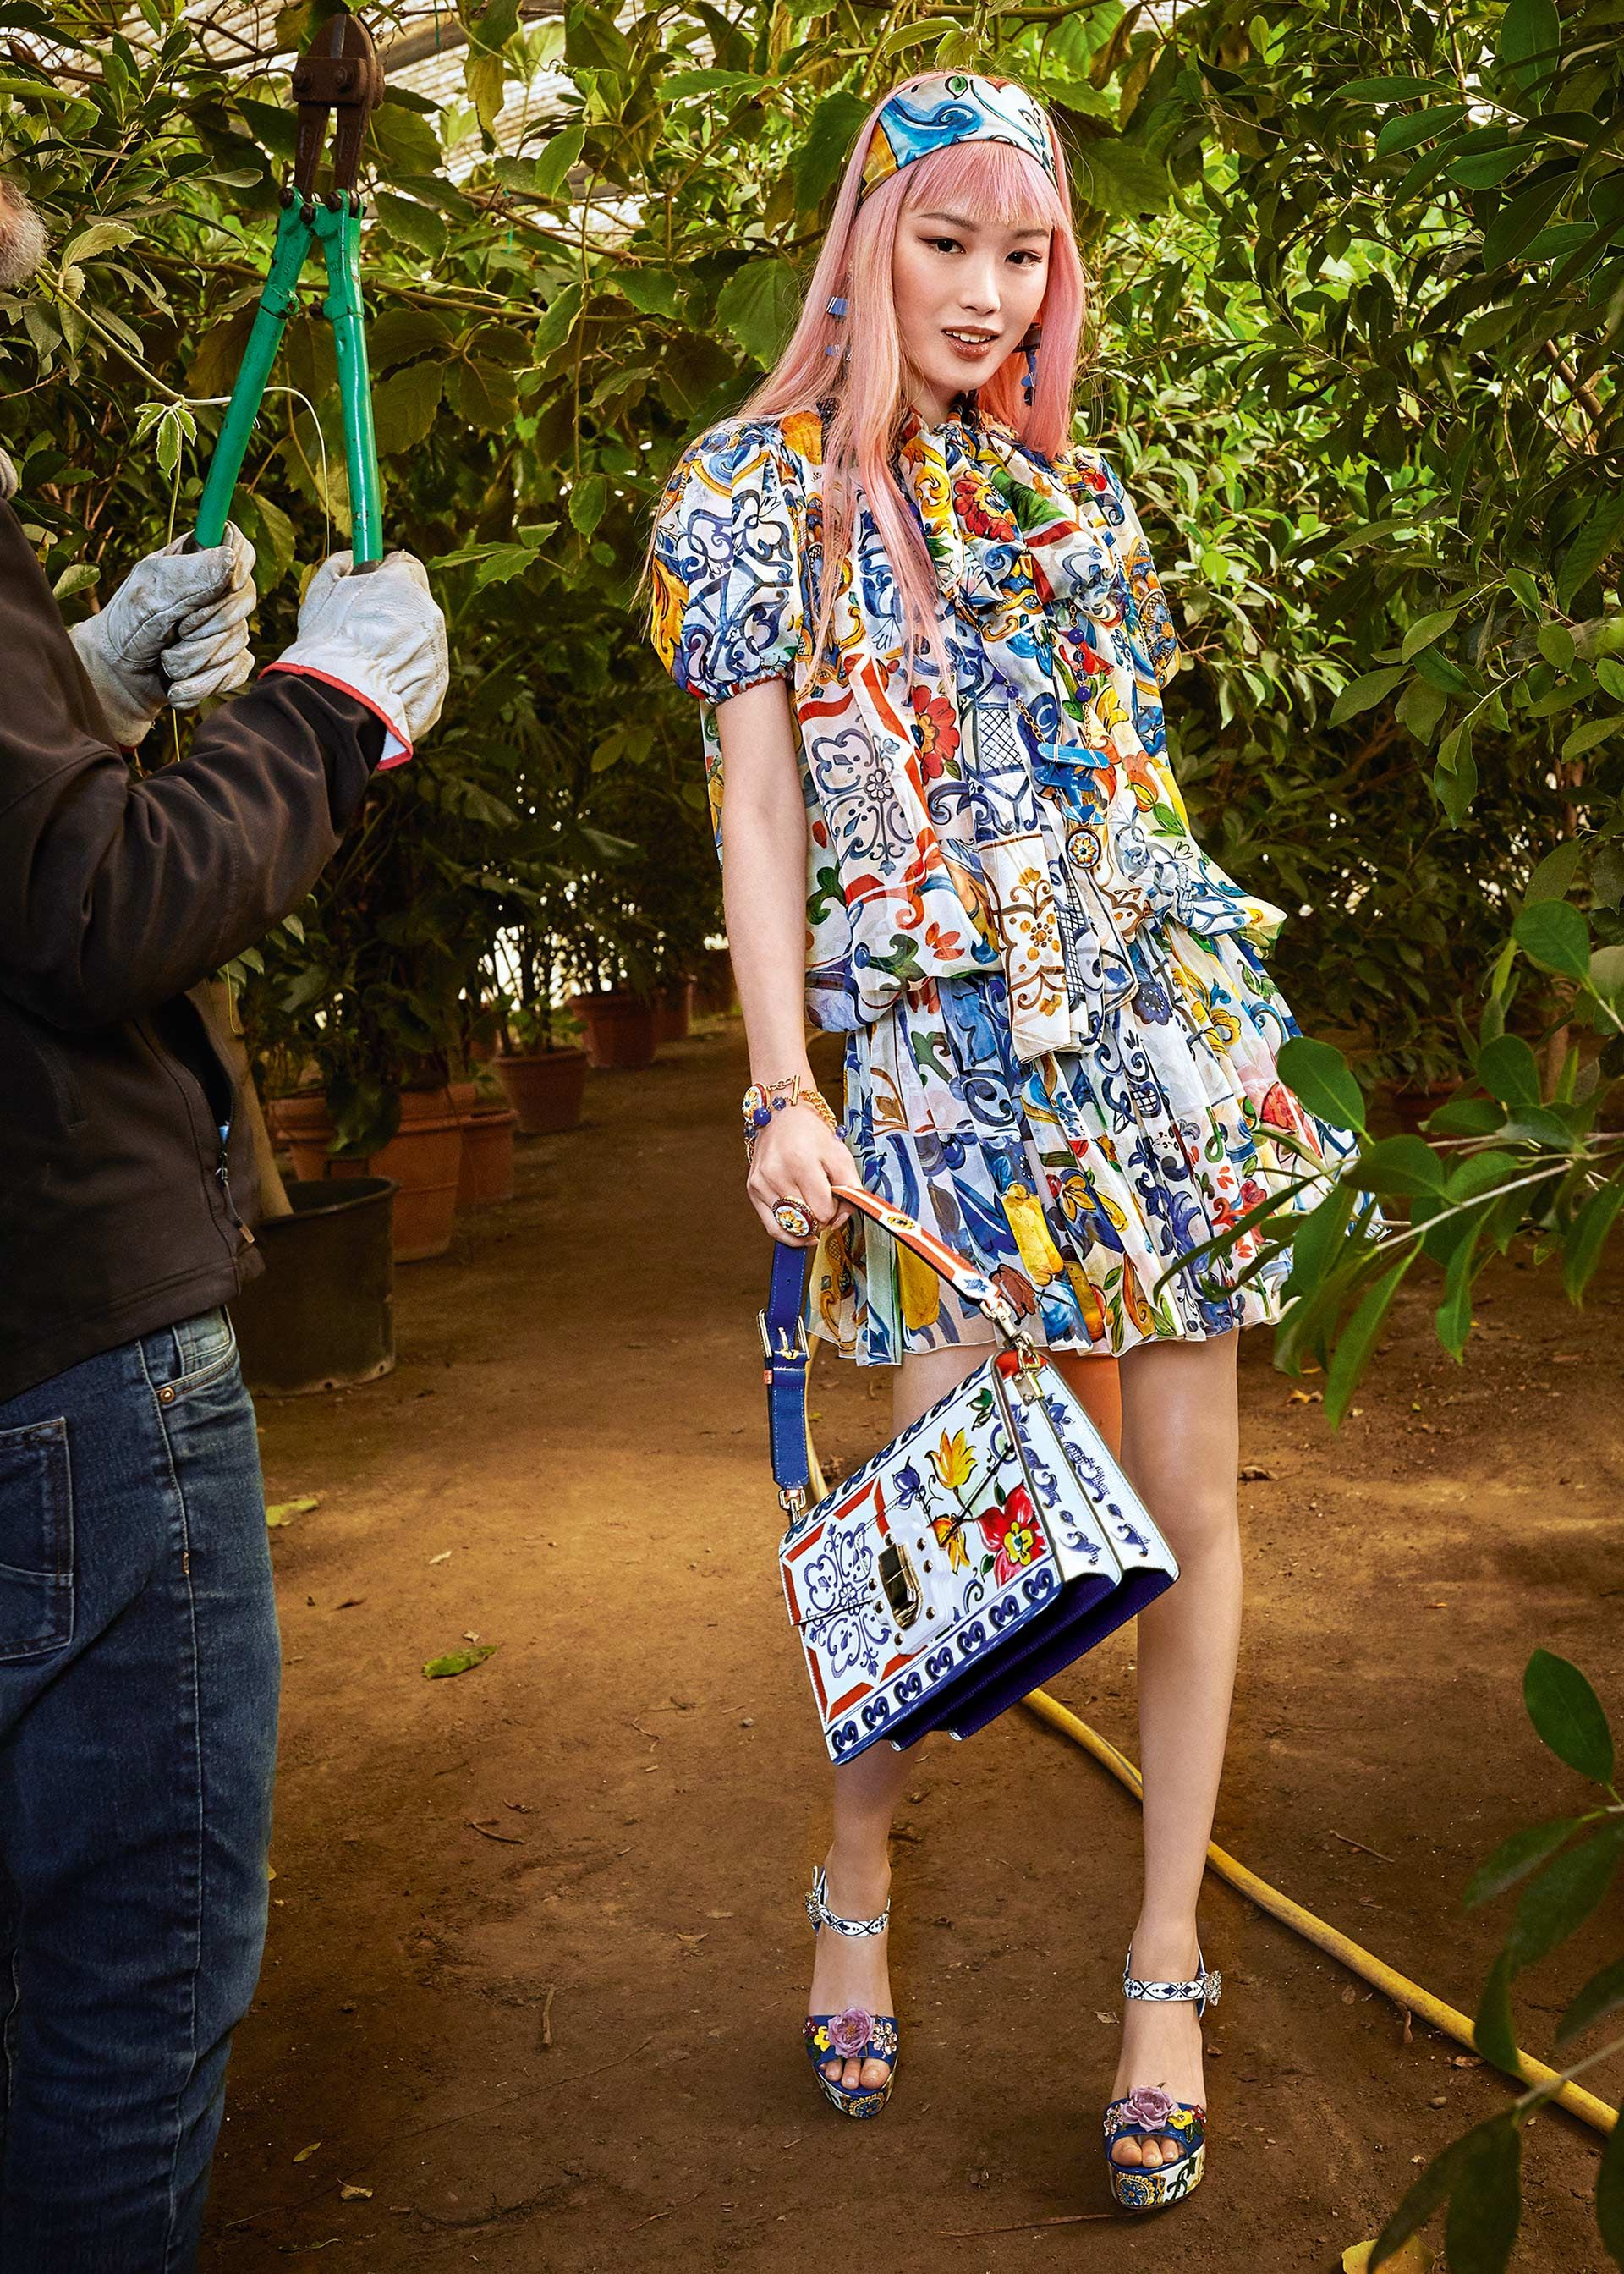 Discover the new Dolce   Gabbana Women s I Love Maiolica Collection for  Fall Winter 2018-19 and get inspired. Visit the official website  Dolcegabbana.com. cd201d7b9